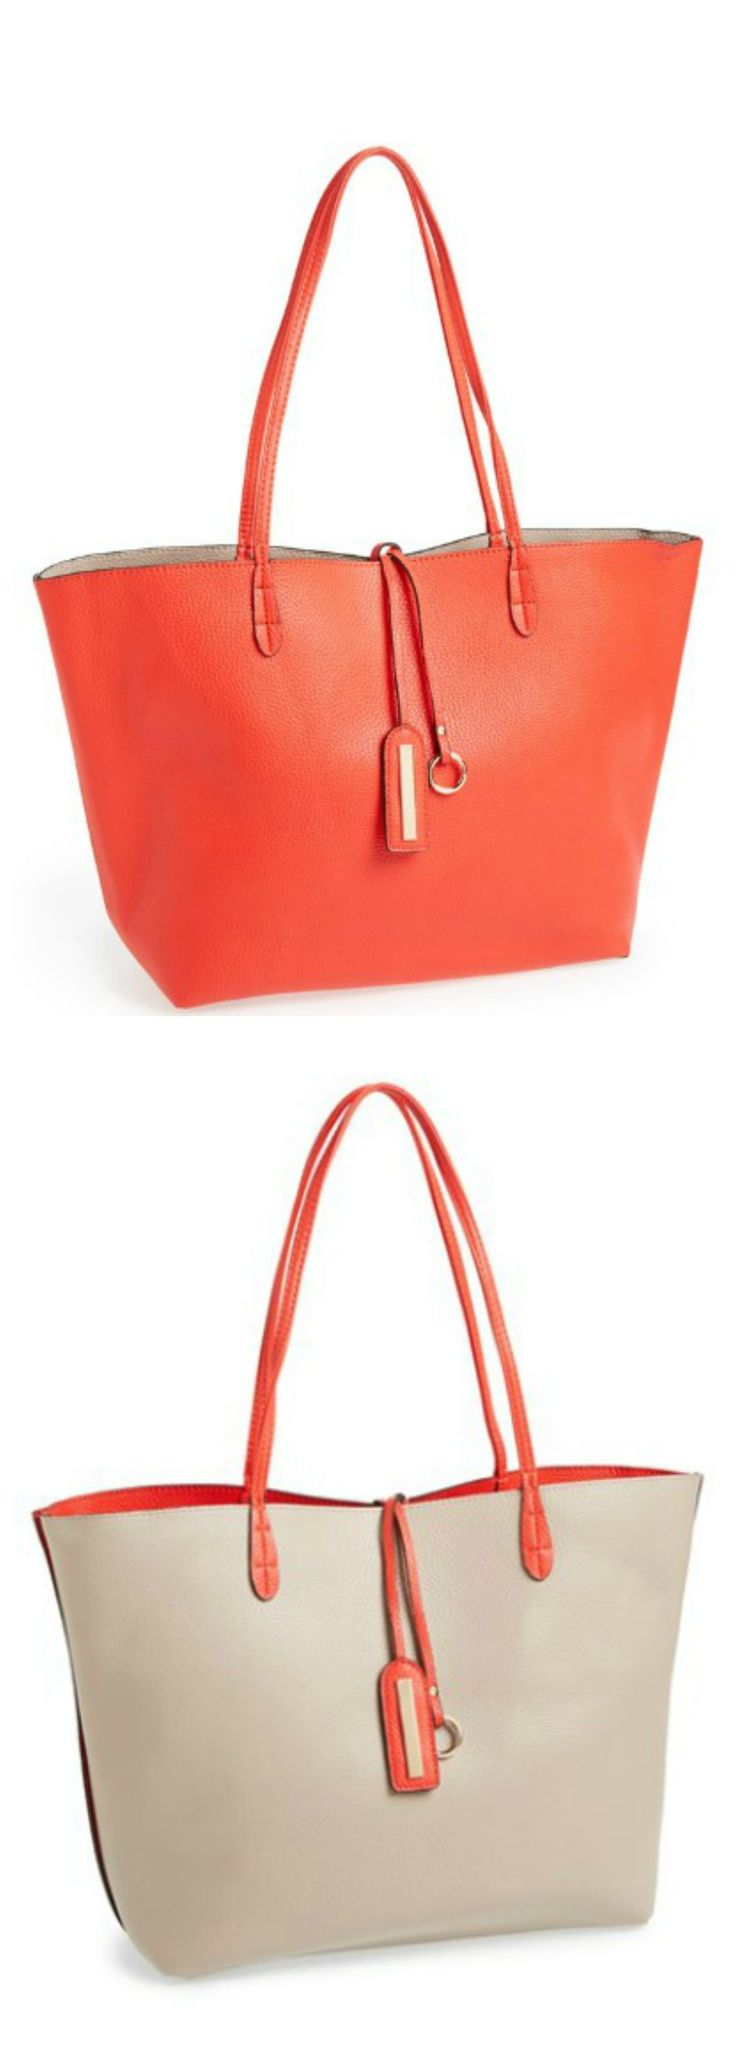 One bag, two ways! Love the versatility of this tote.